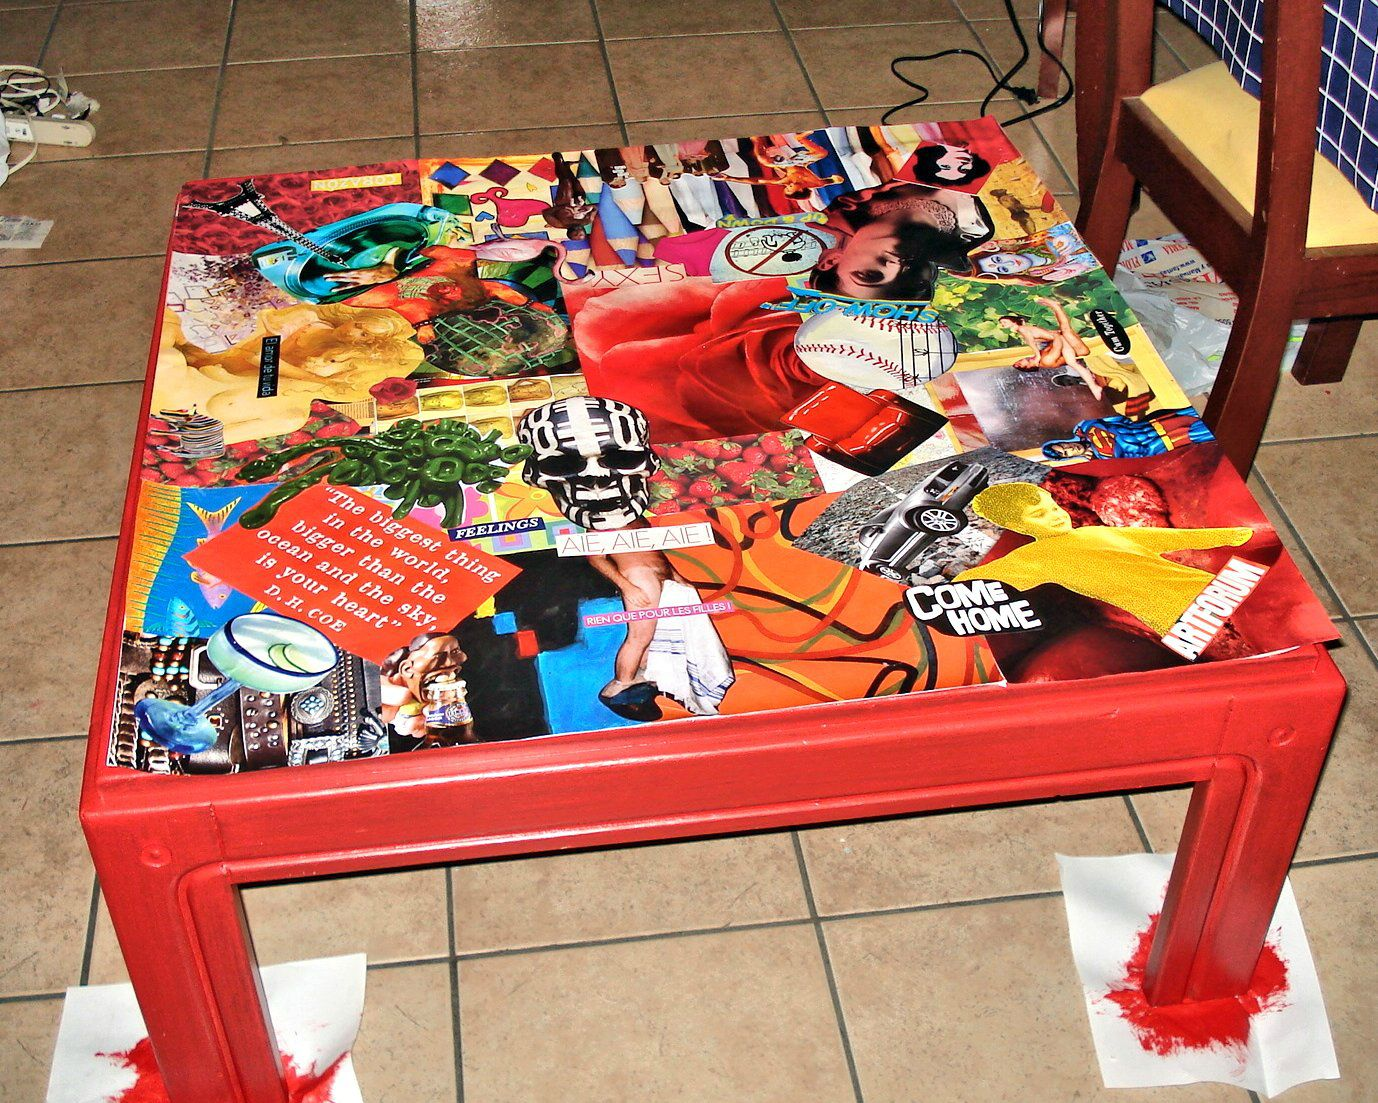 Table basse collage id es couleurs cr ations - Table basse peinte ...